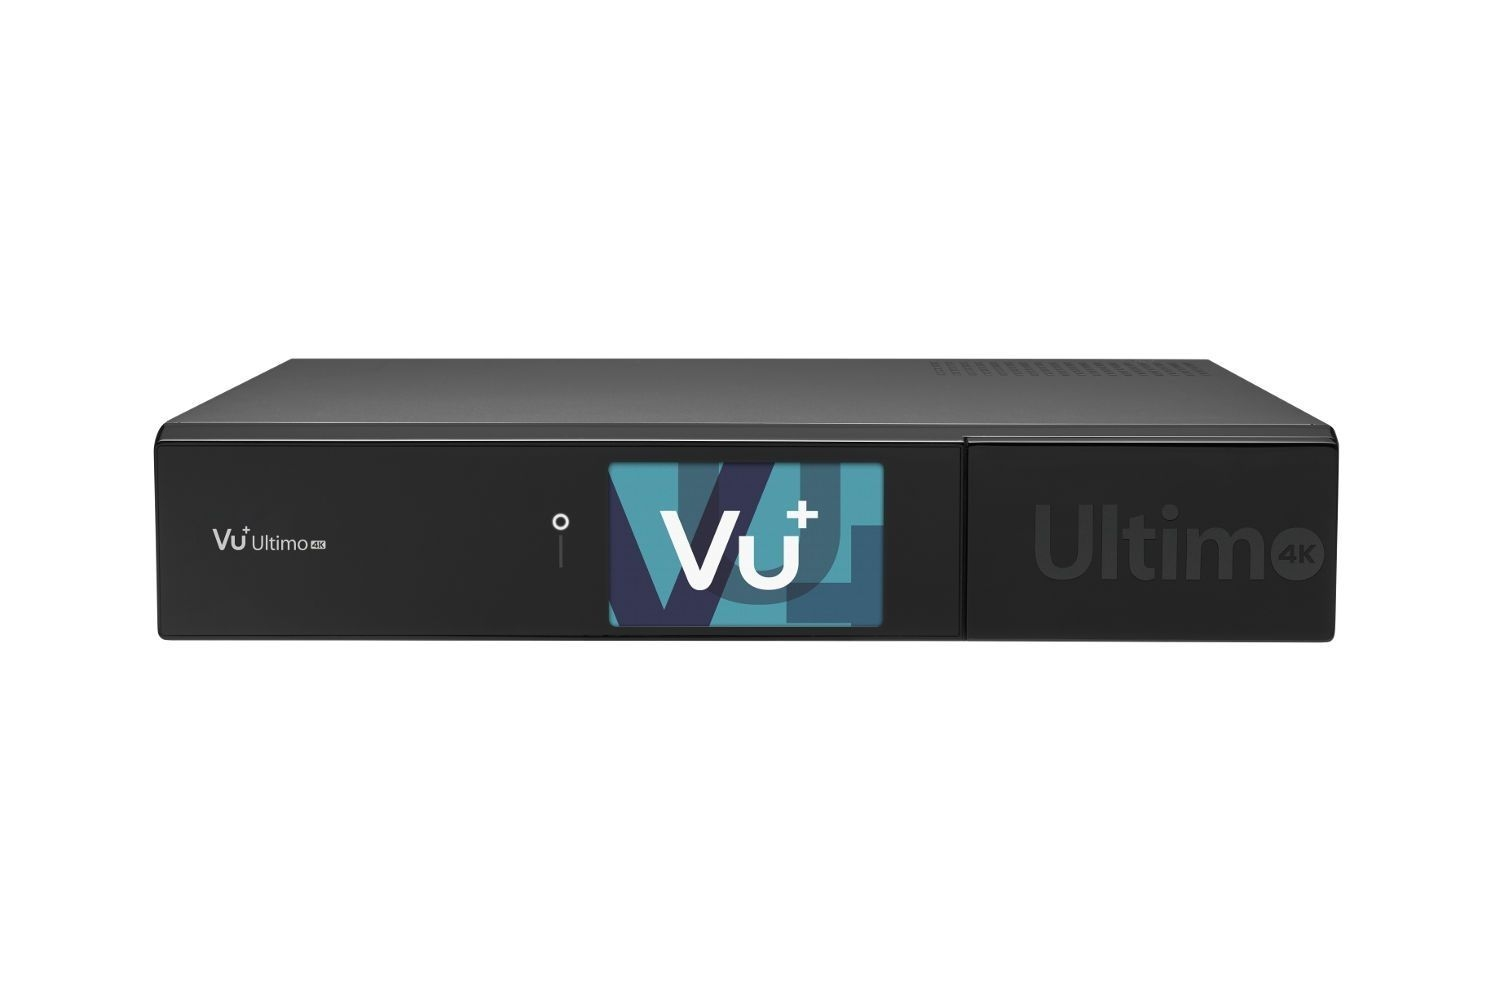 VU+ Ultimo 4K 2x DVB-C FBC / 1x DVB-C/T2 Dual Tuner 500 GB HDD Linux Receiver UHD 2160p